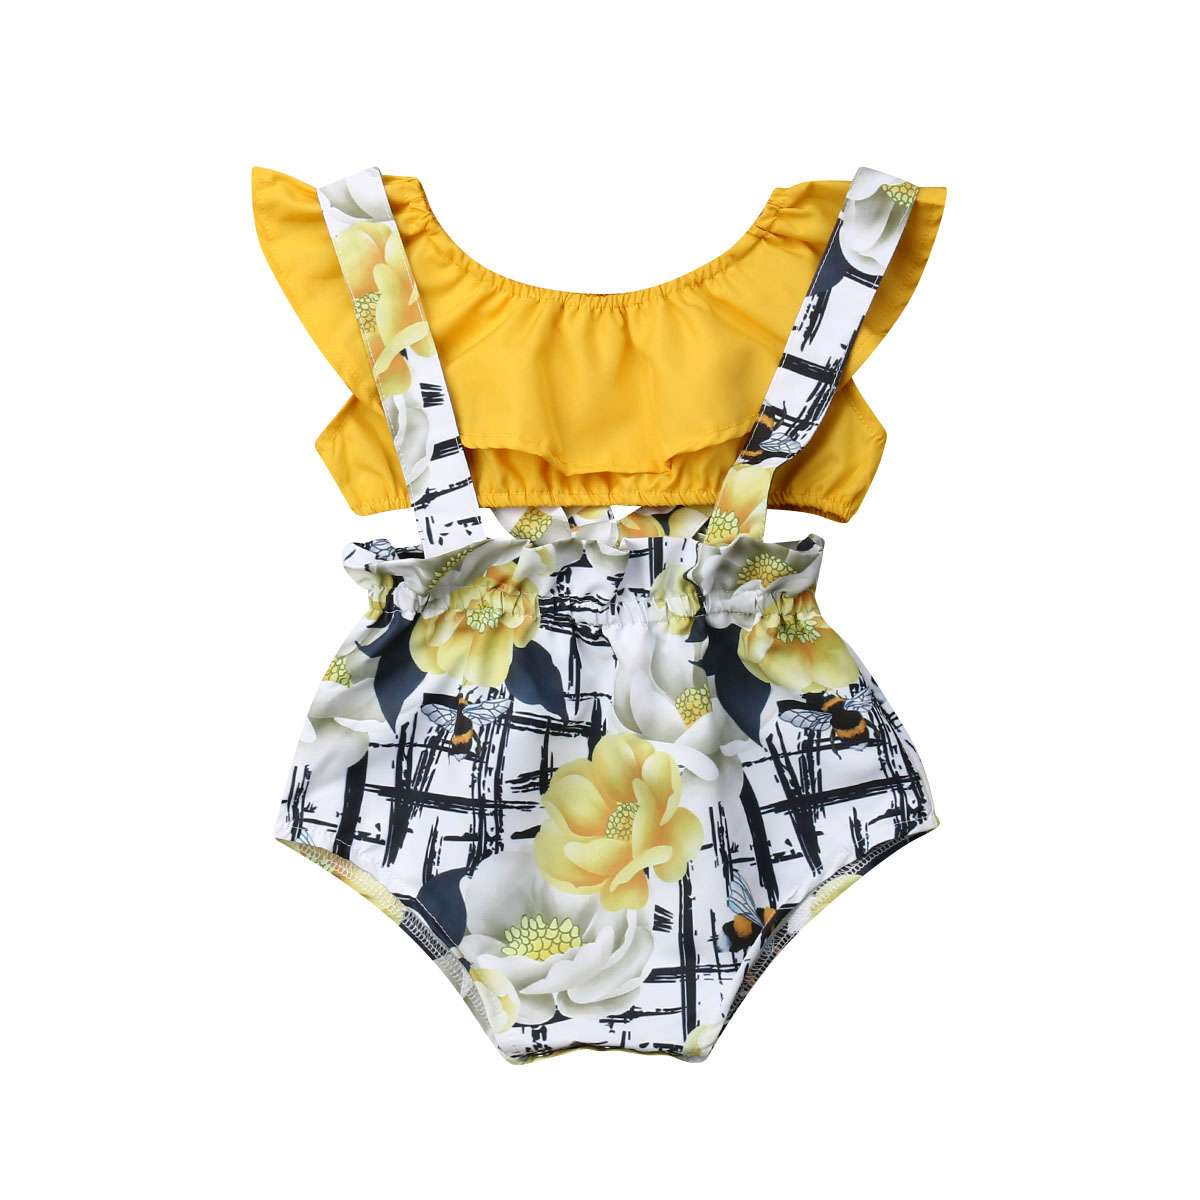 Newborn Baby Girl Kids Summer Toddler Summer Outfits Clothes Ruffle Floral Print Romper Tops with Skirt 2PCS Set